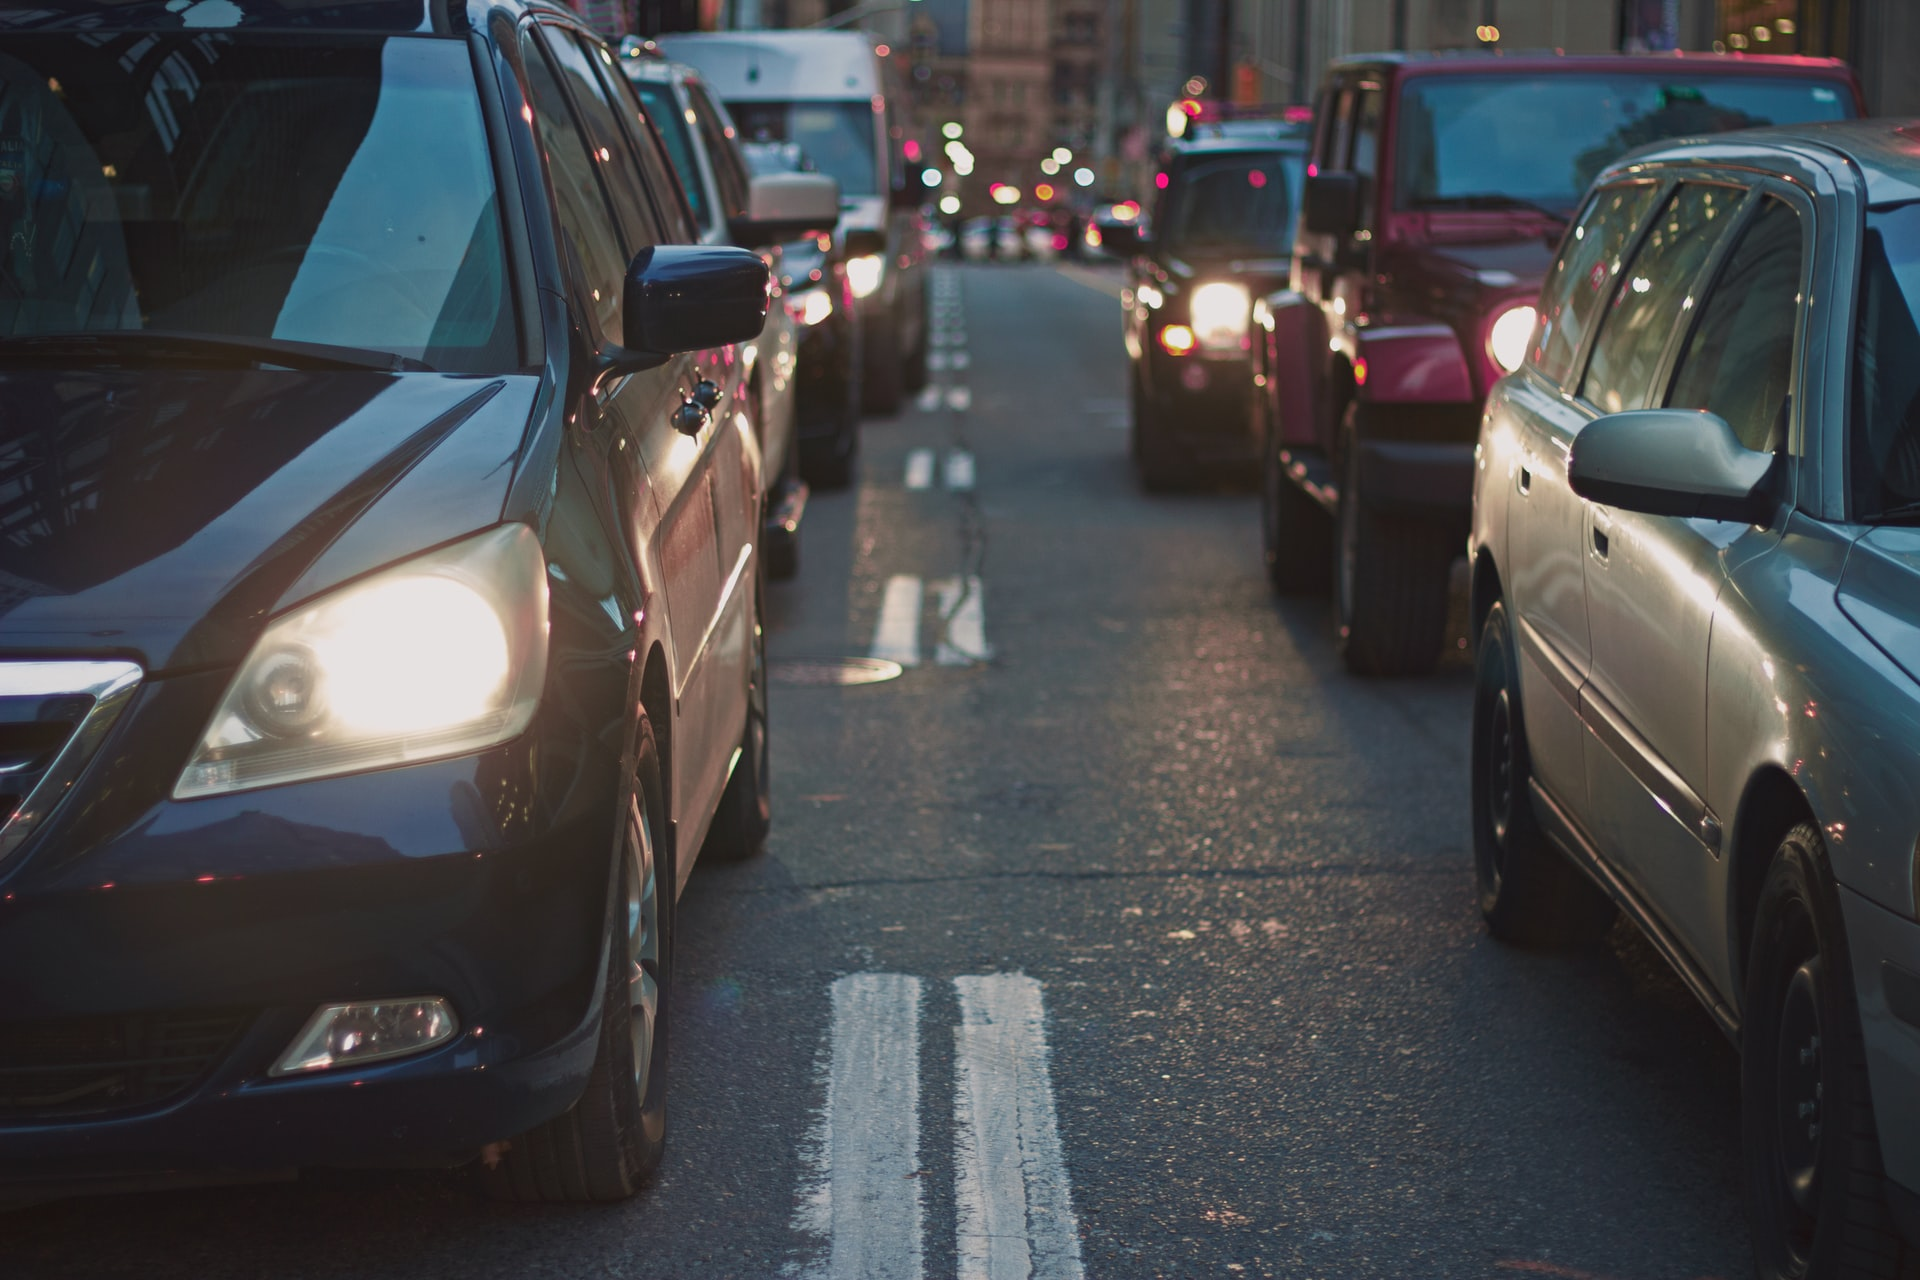 Covea's and By Miles' pay-per-mile motor product will give both parties what they need